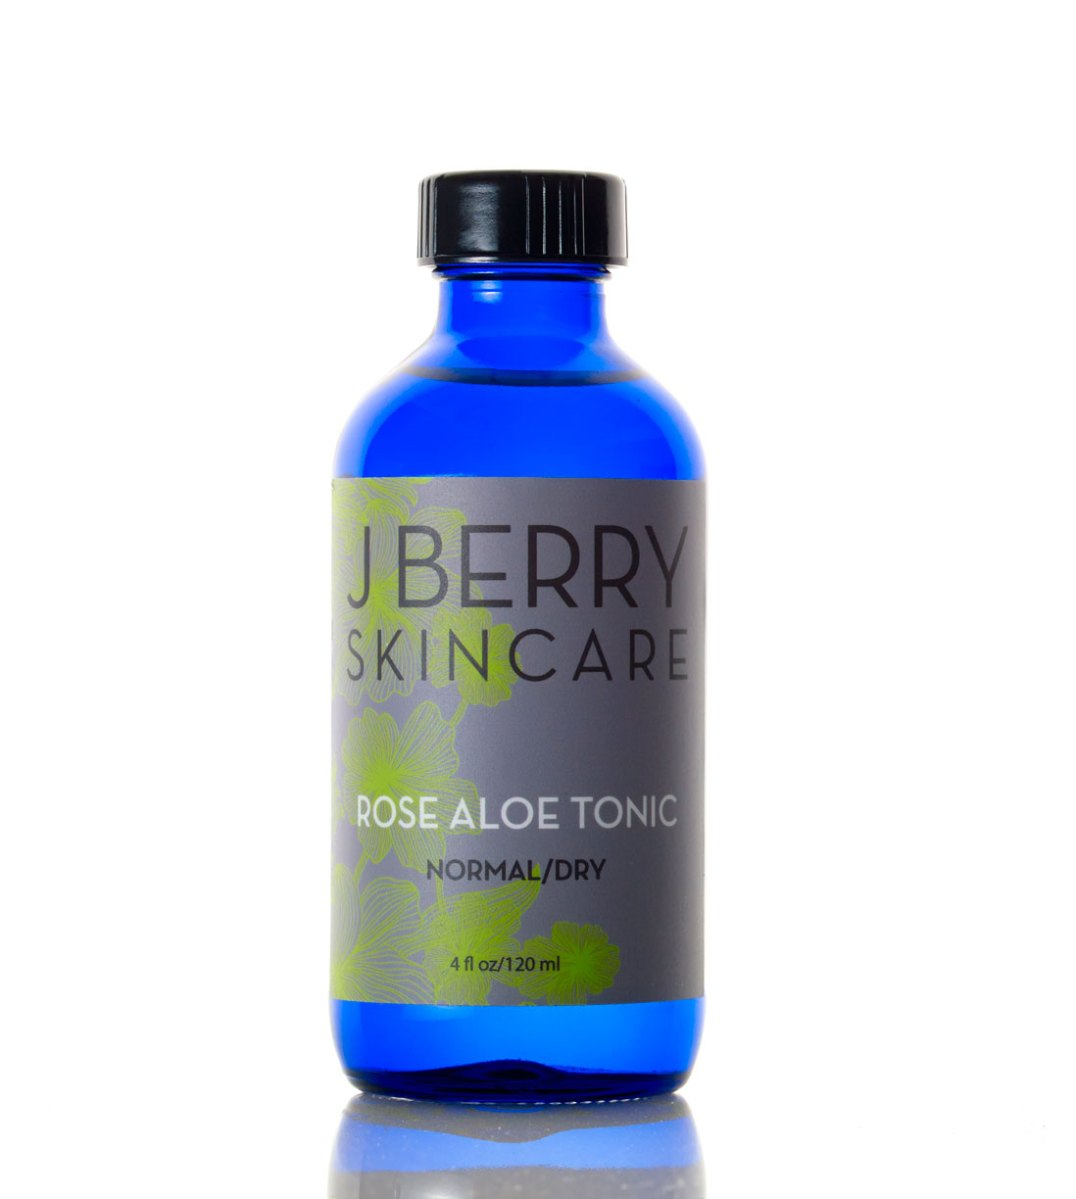 Rose Aloe Tonic